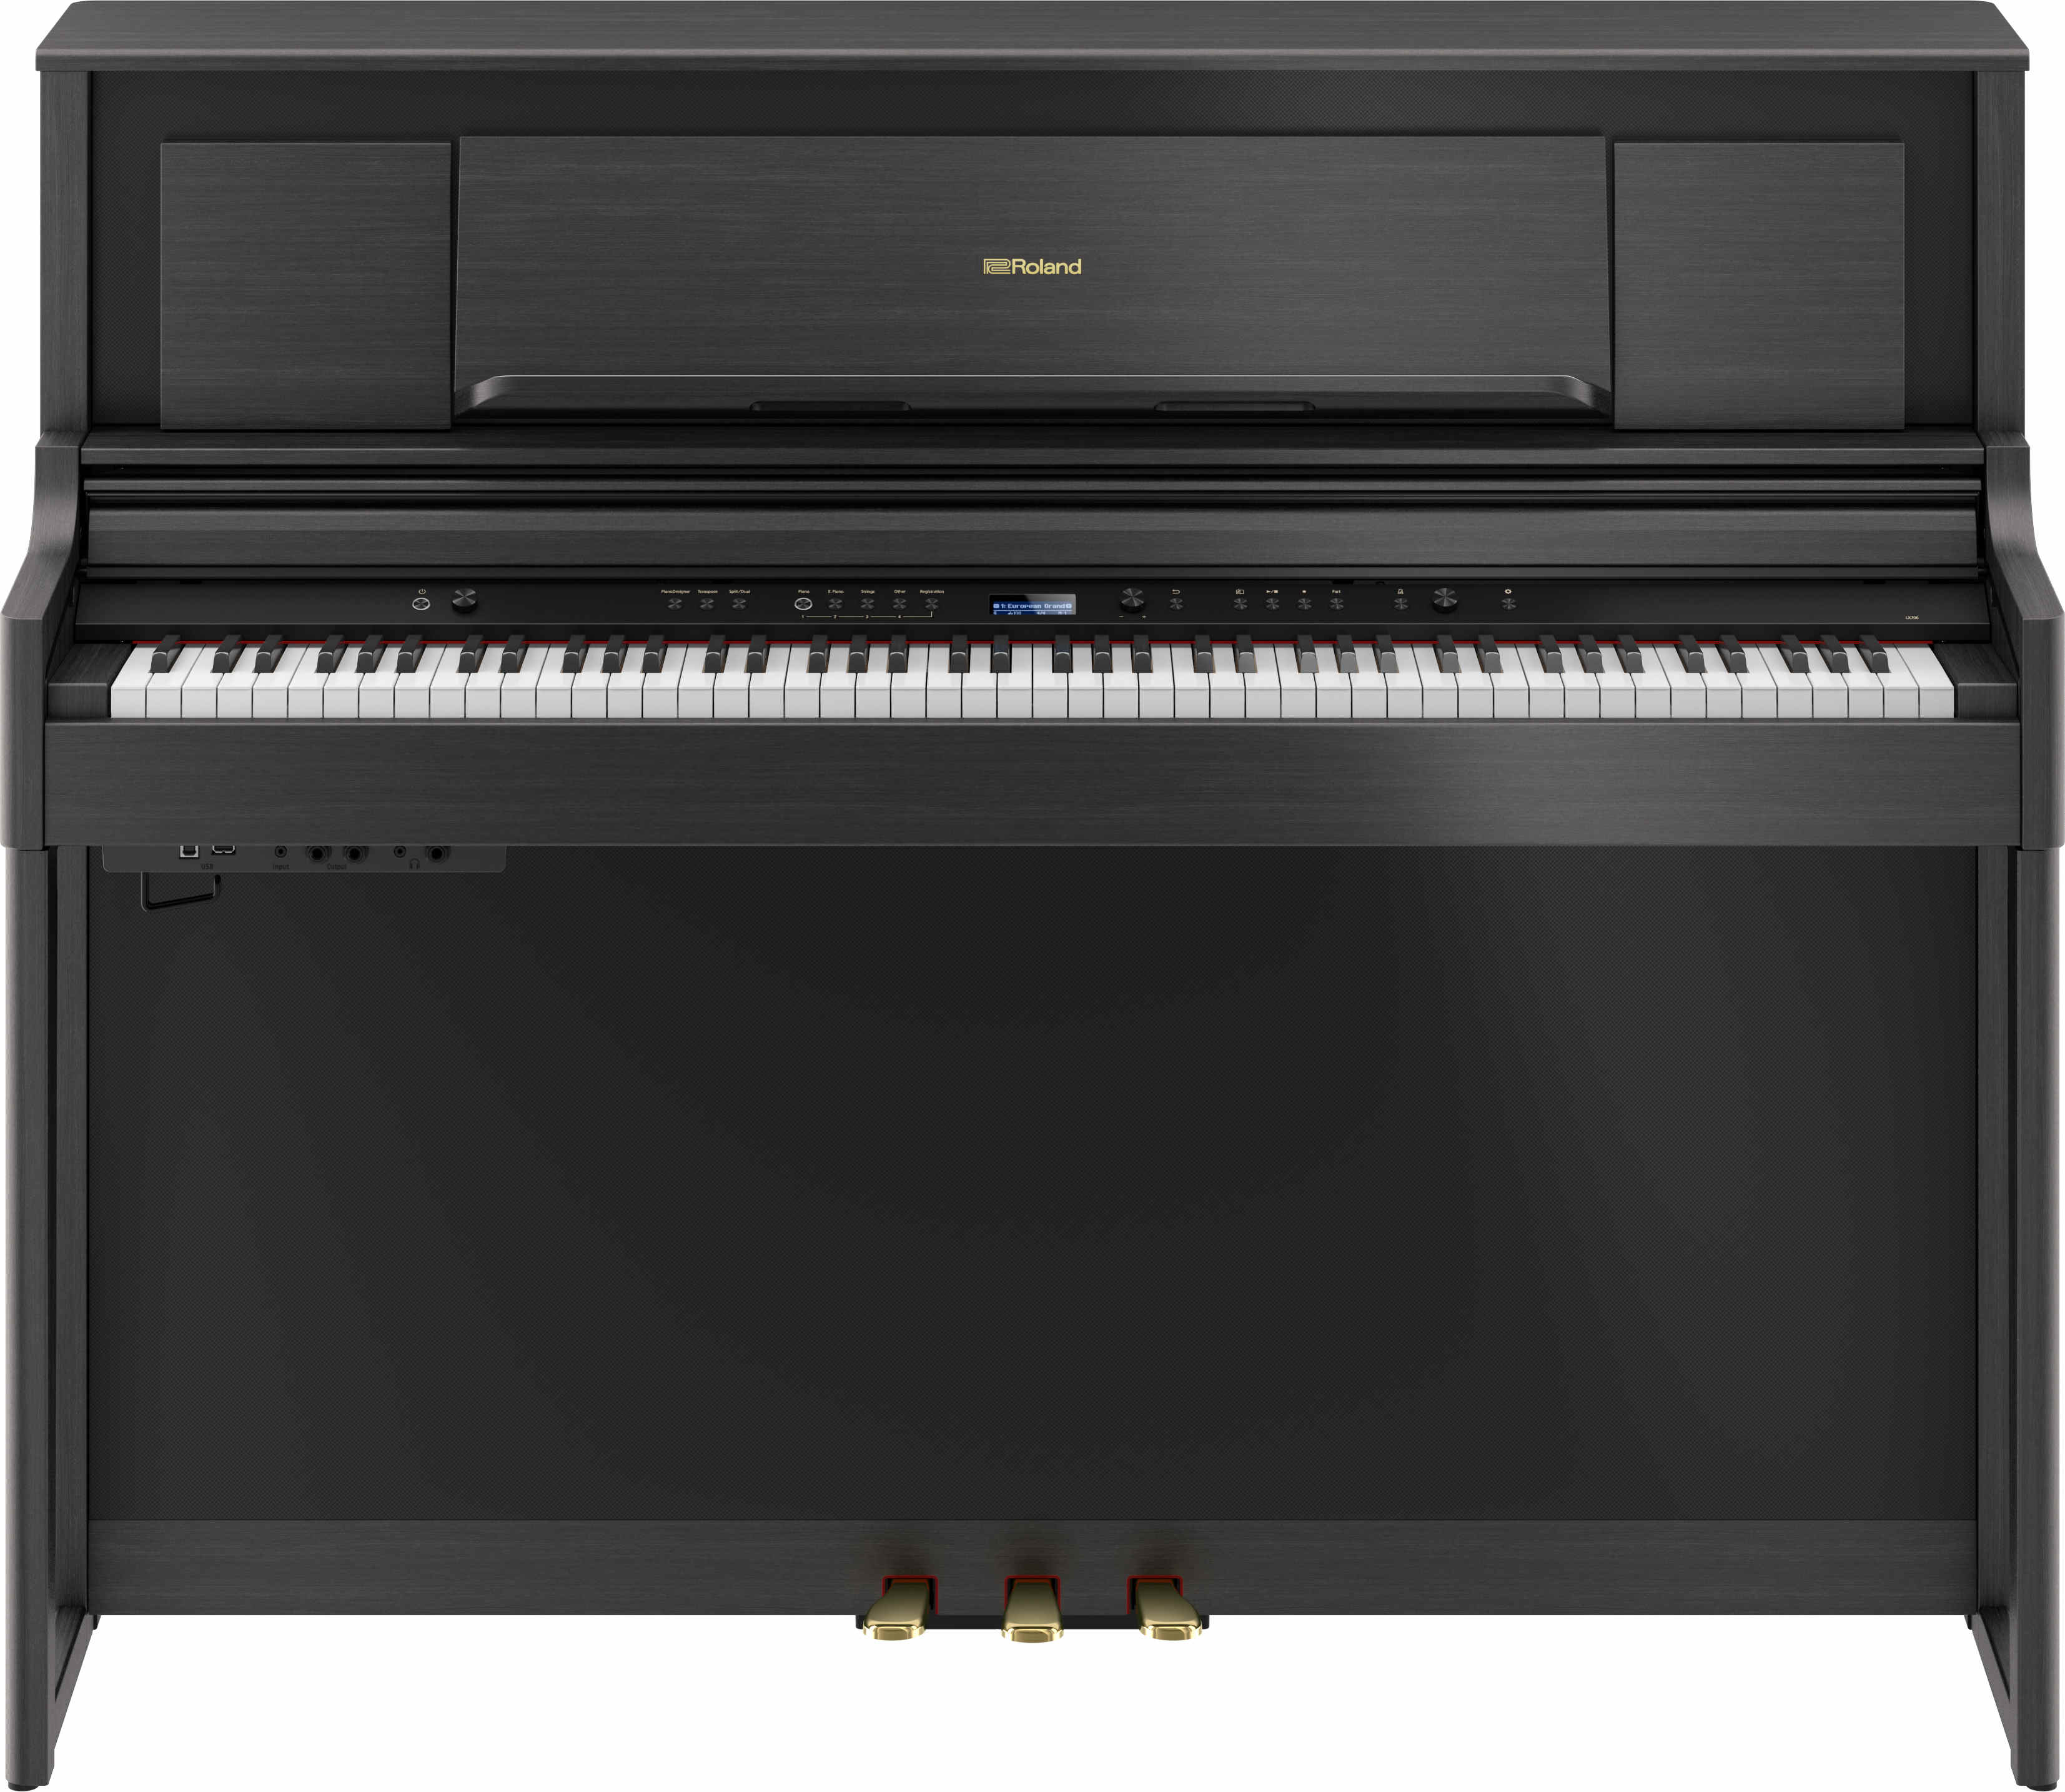 Traditional Look Digital Piano LX-706